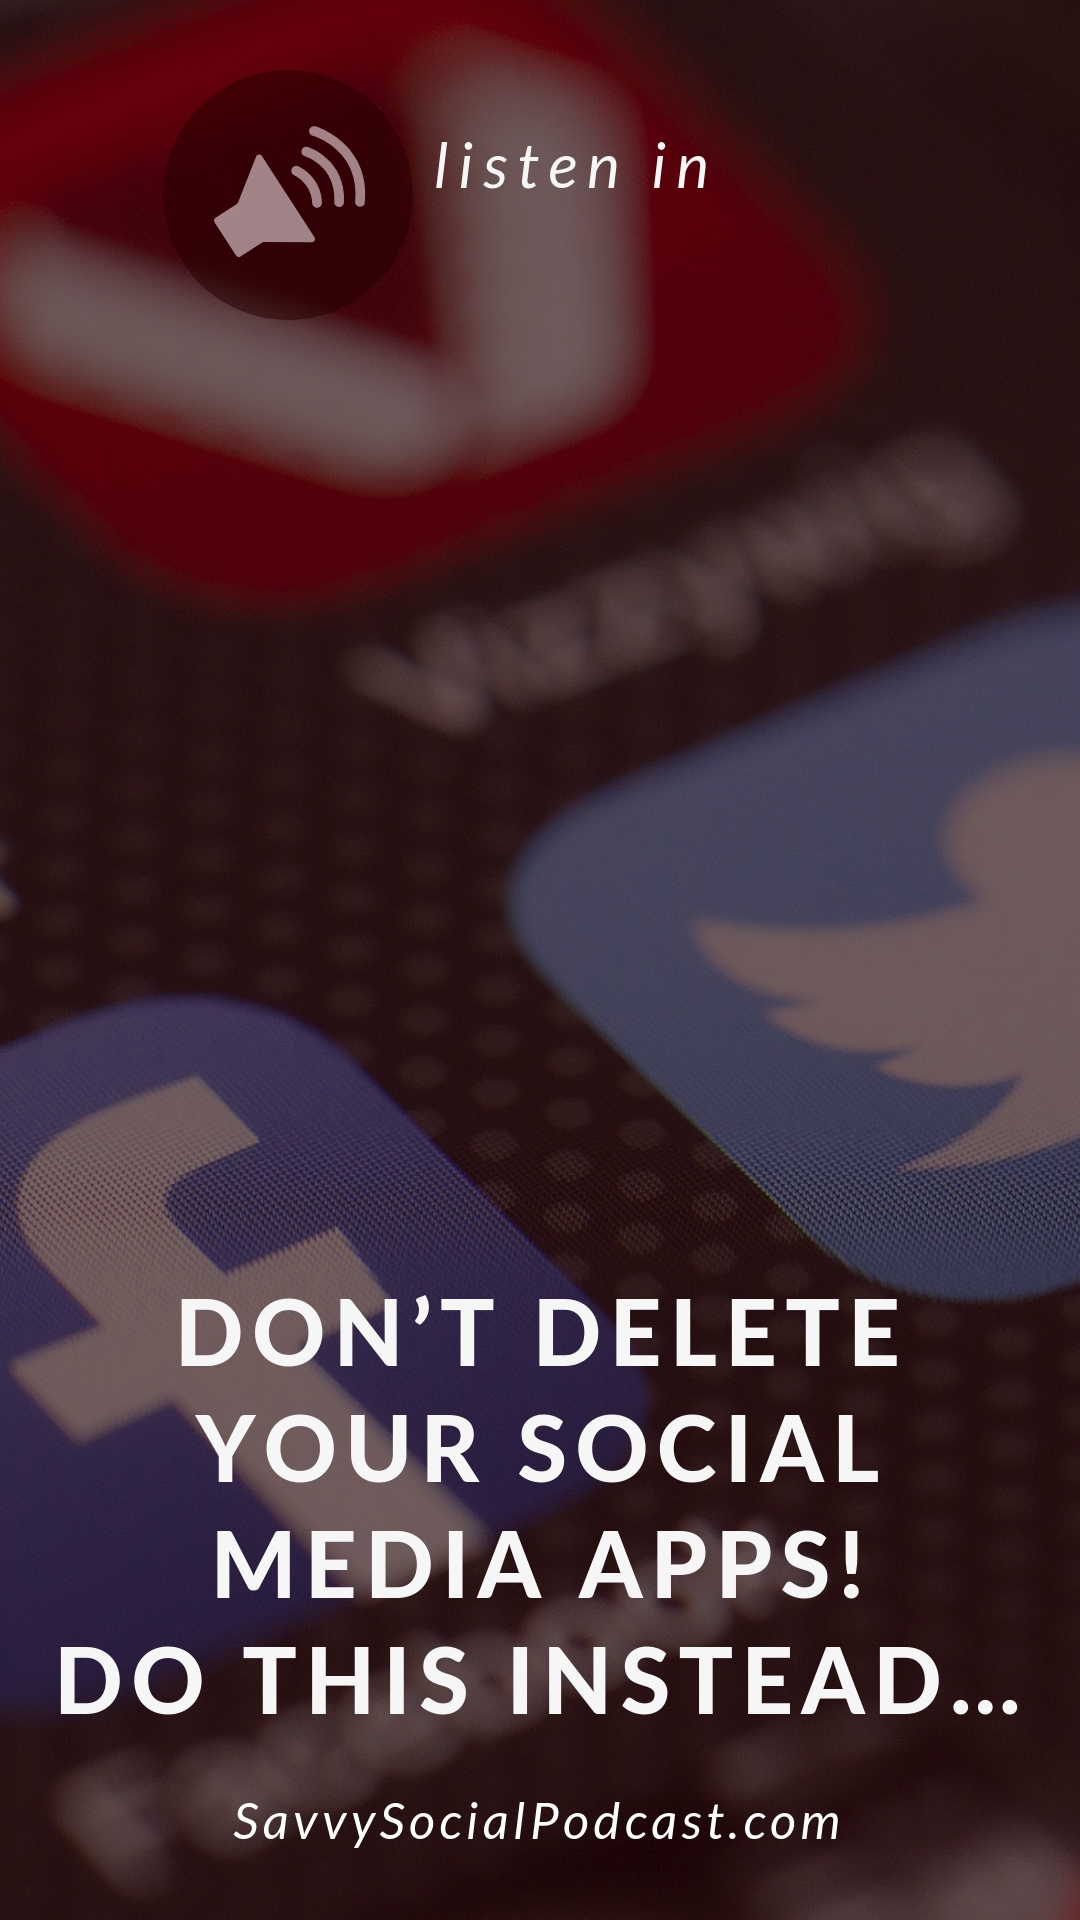 Don't delete your social media apps! Do this instead…